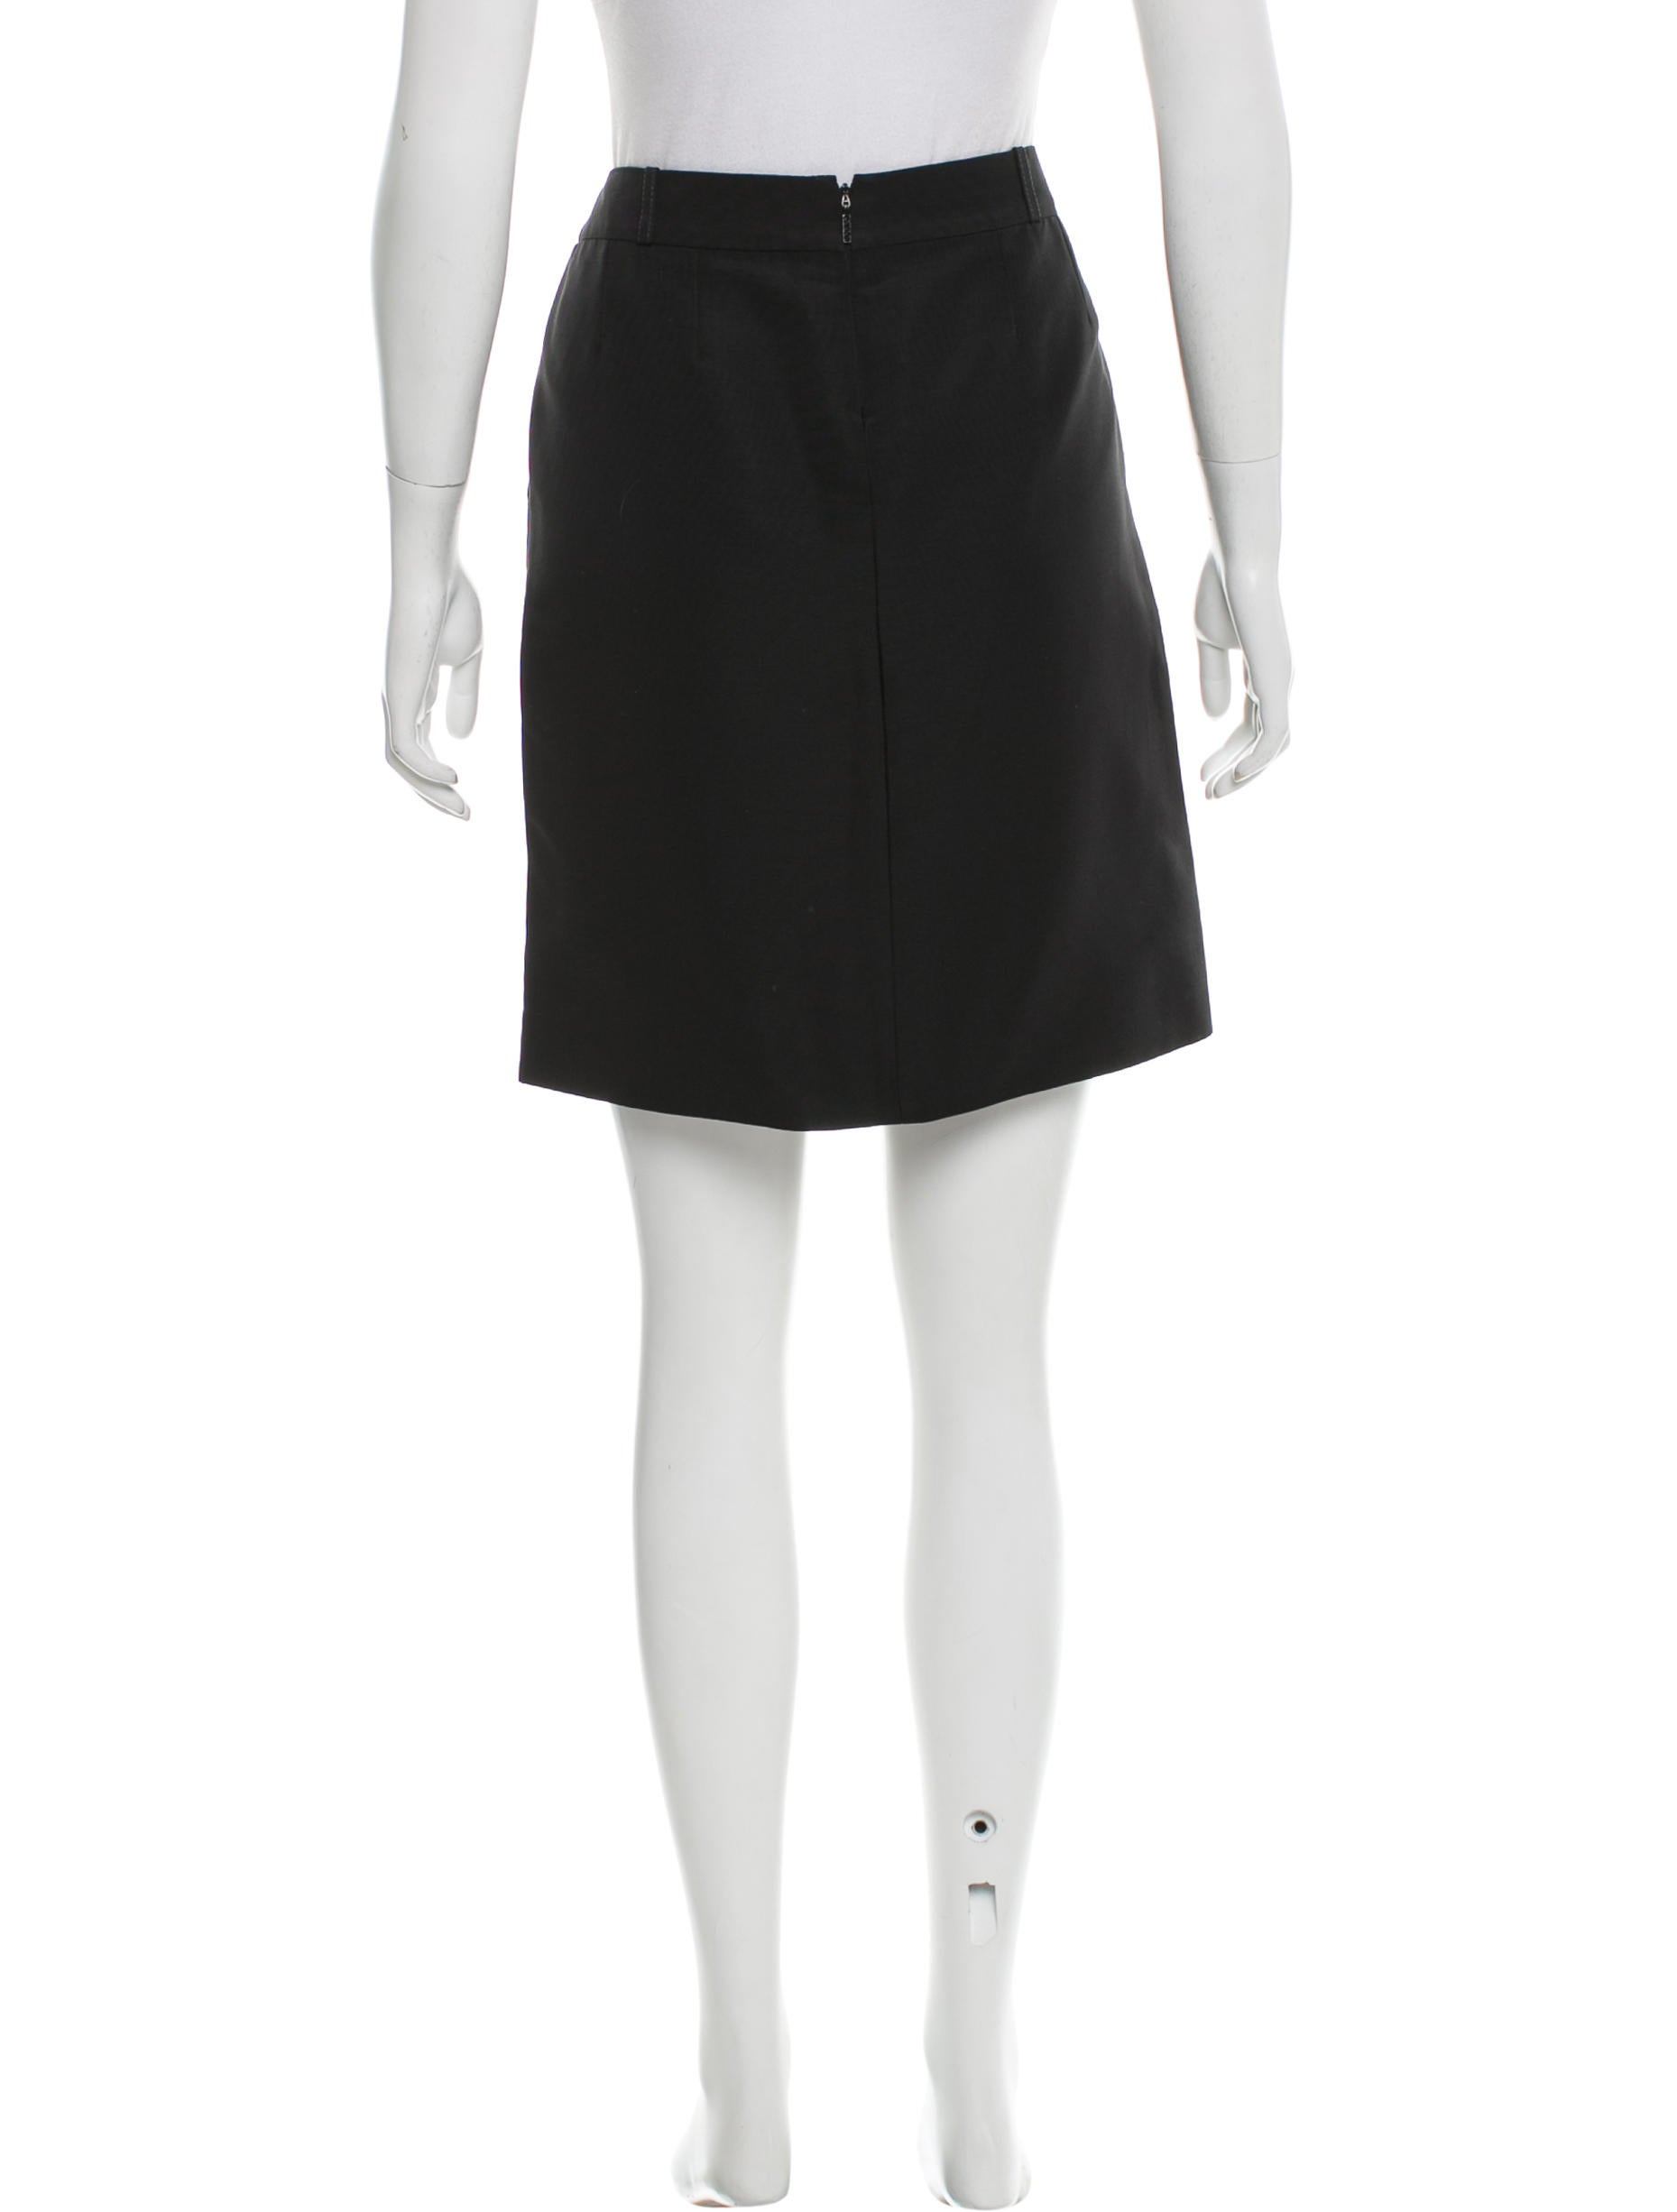 Gucci Embellished Mini Skirt - Clothing - GUC144894   The RealReal